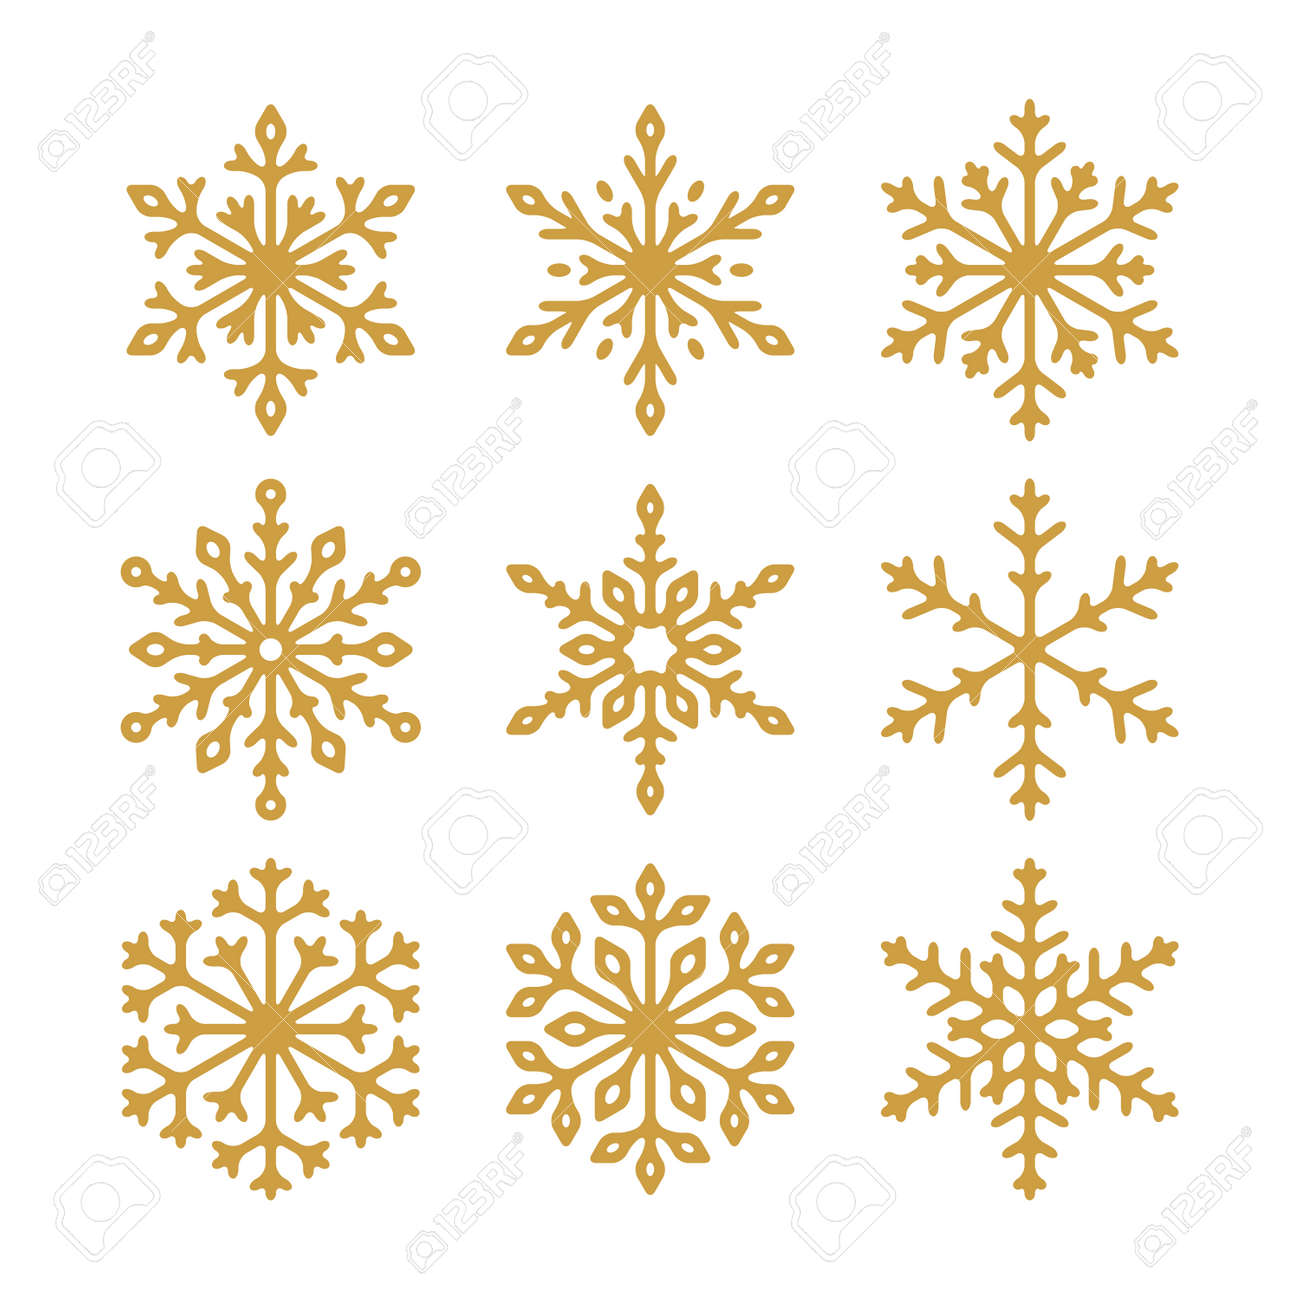 Set of vector golden snowflakes icons. Collection of illustration for your design. - 138030660